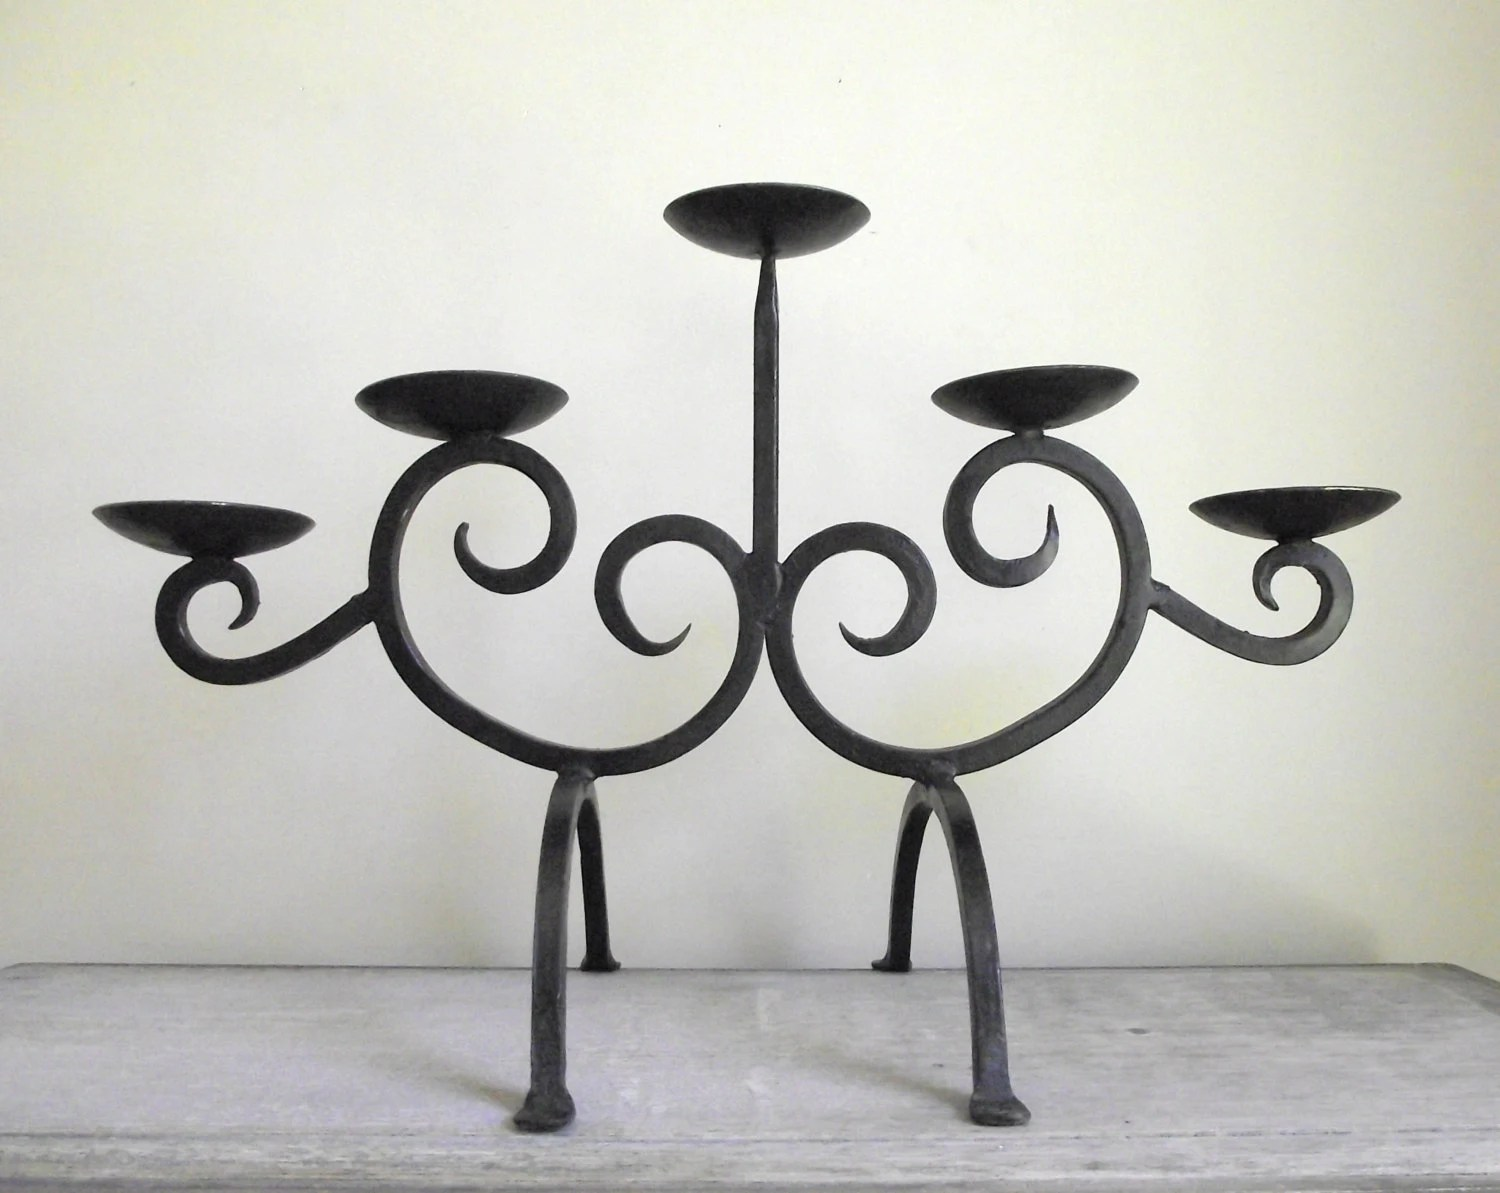 Wrought Iron Candle Holder Modern Rustic Scroll Black Iron on Black Wrought Iron Wall Candle Holders id=18579